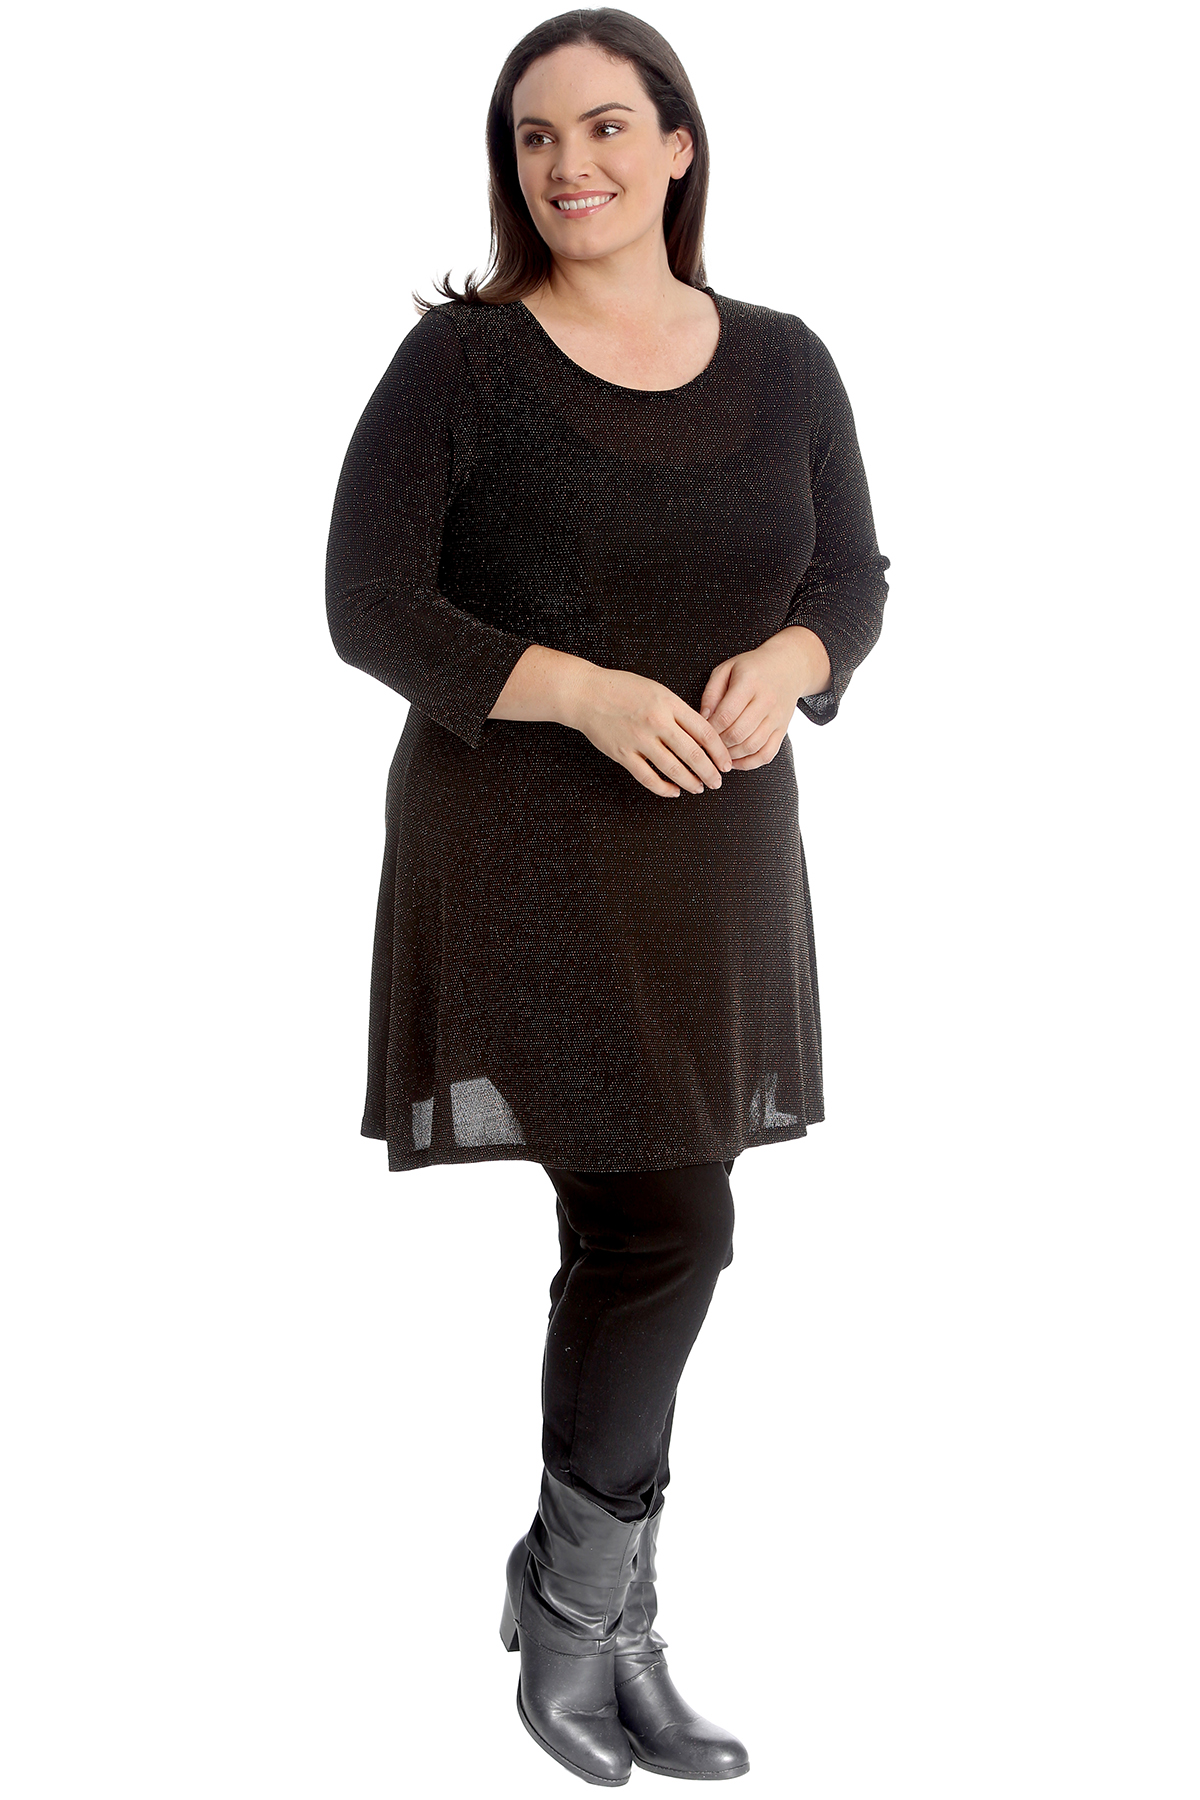 New Womens Ladies Plus Size Lace Over Shiny Sequin Lined Tunic Top